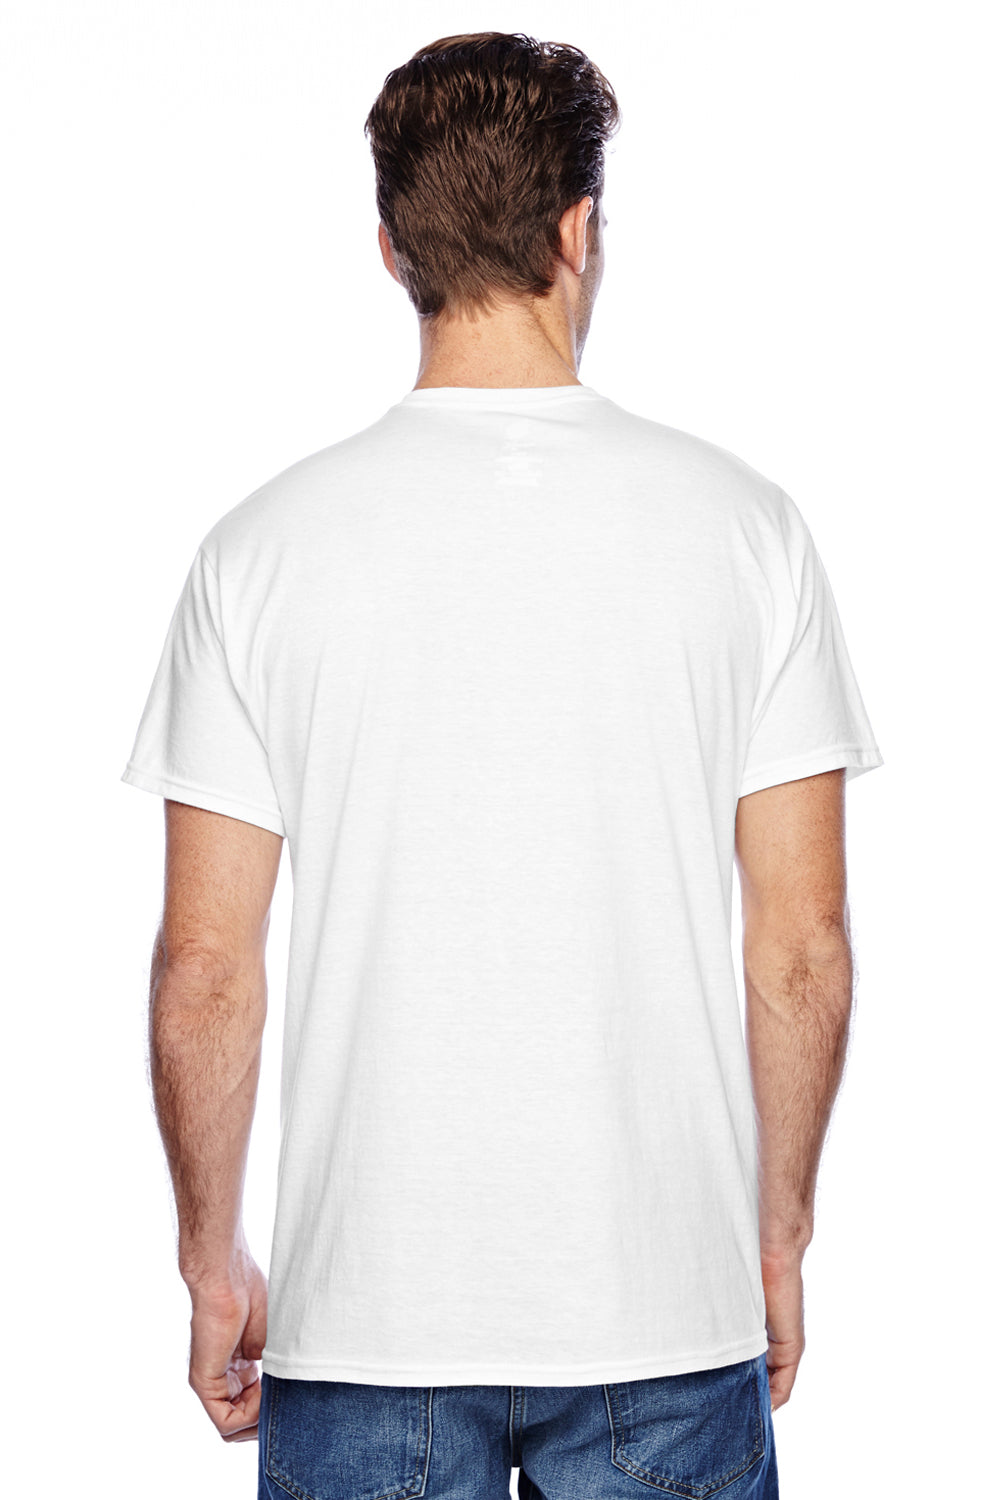 Hanes P4200 Mens X-Temp Moisture Wicking Short Sleeve Crewneck T-Shirt White Back